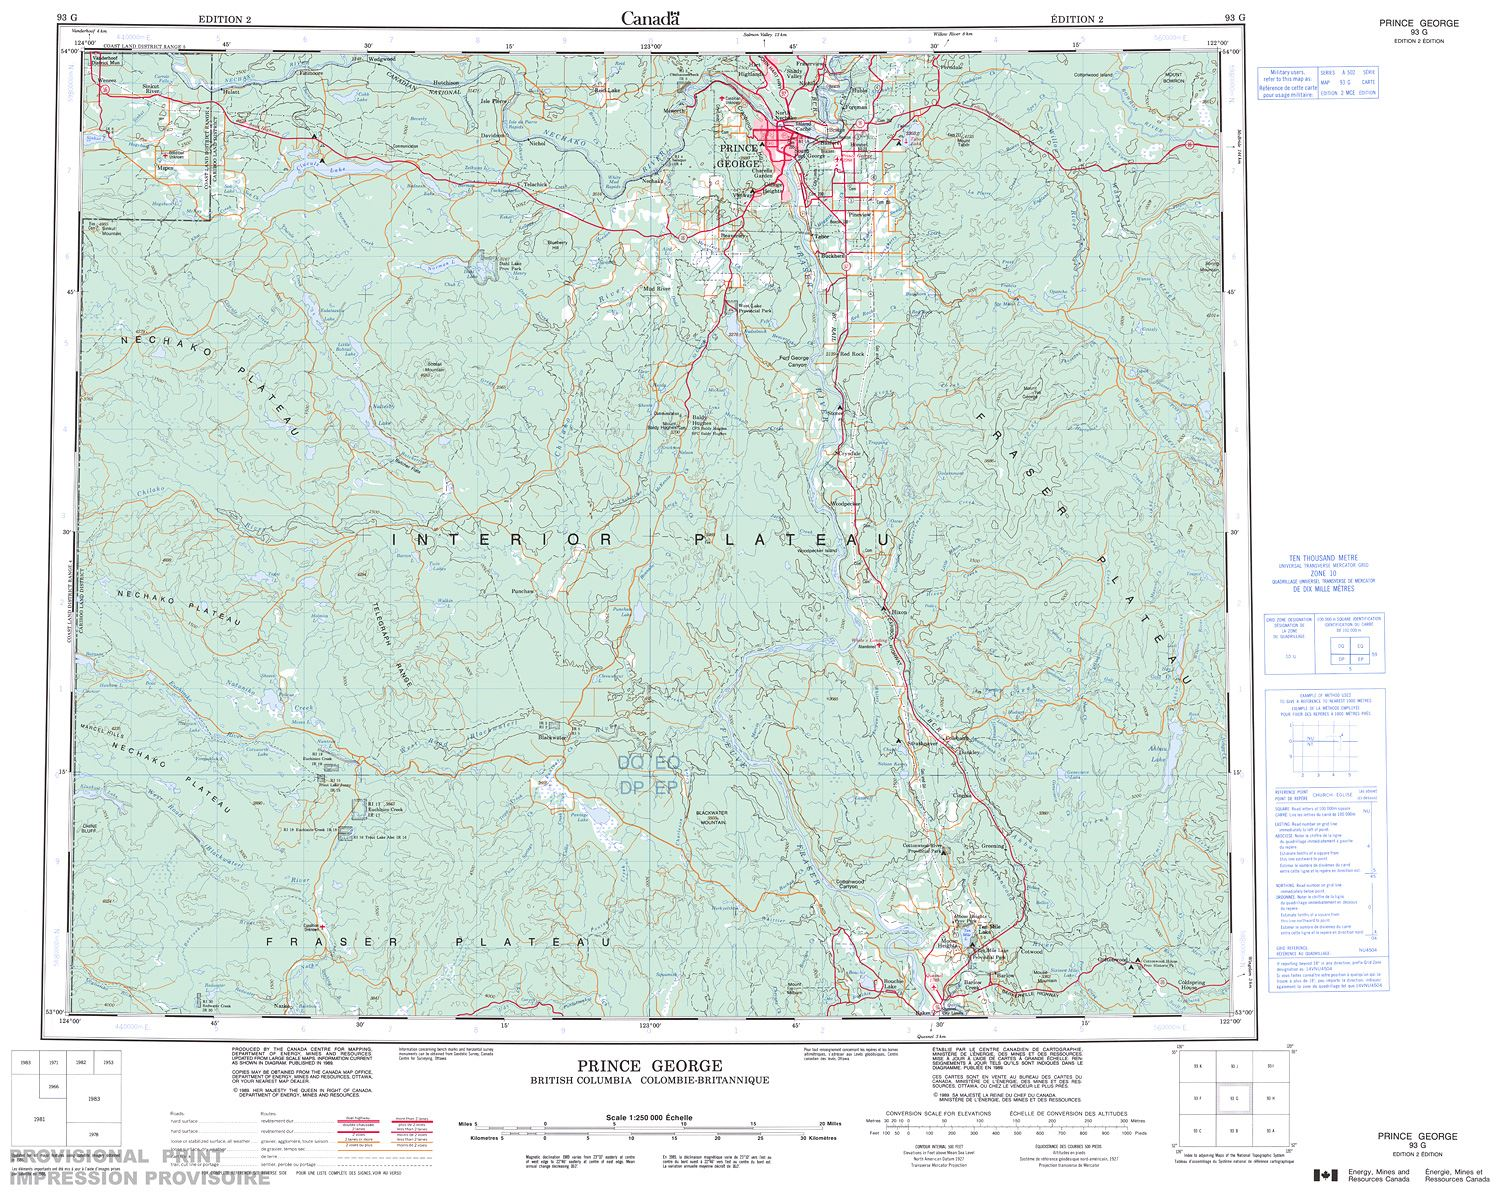 Prince George Canada Map.093g Prince George Topographic Map